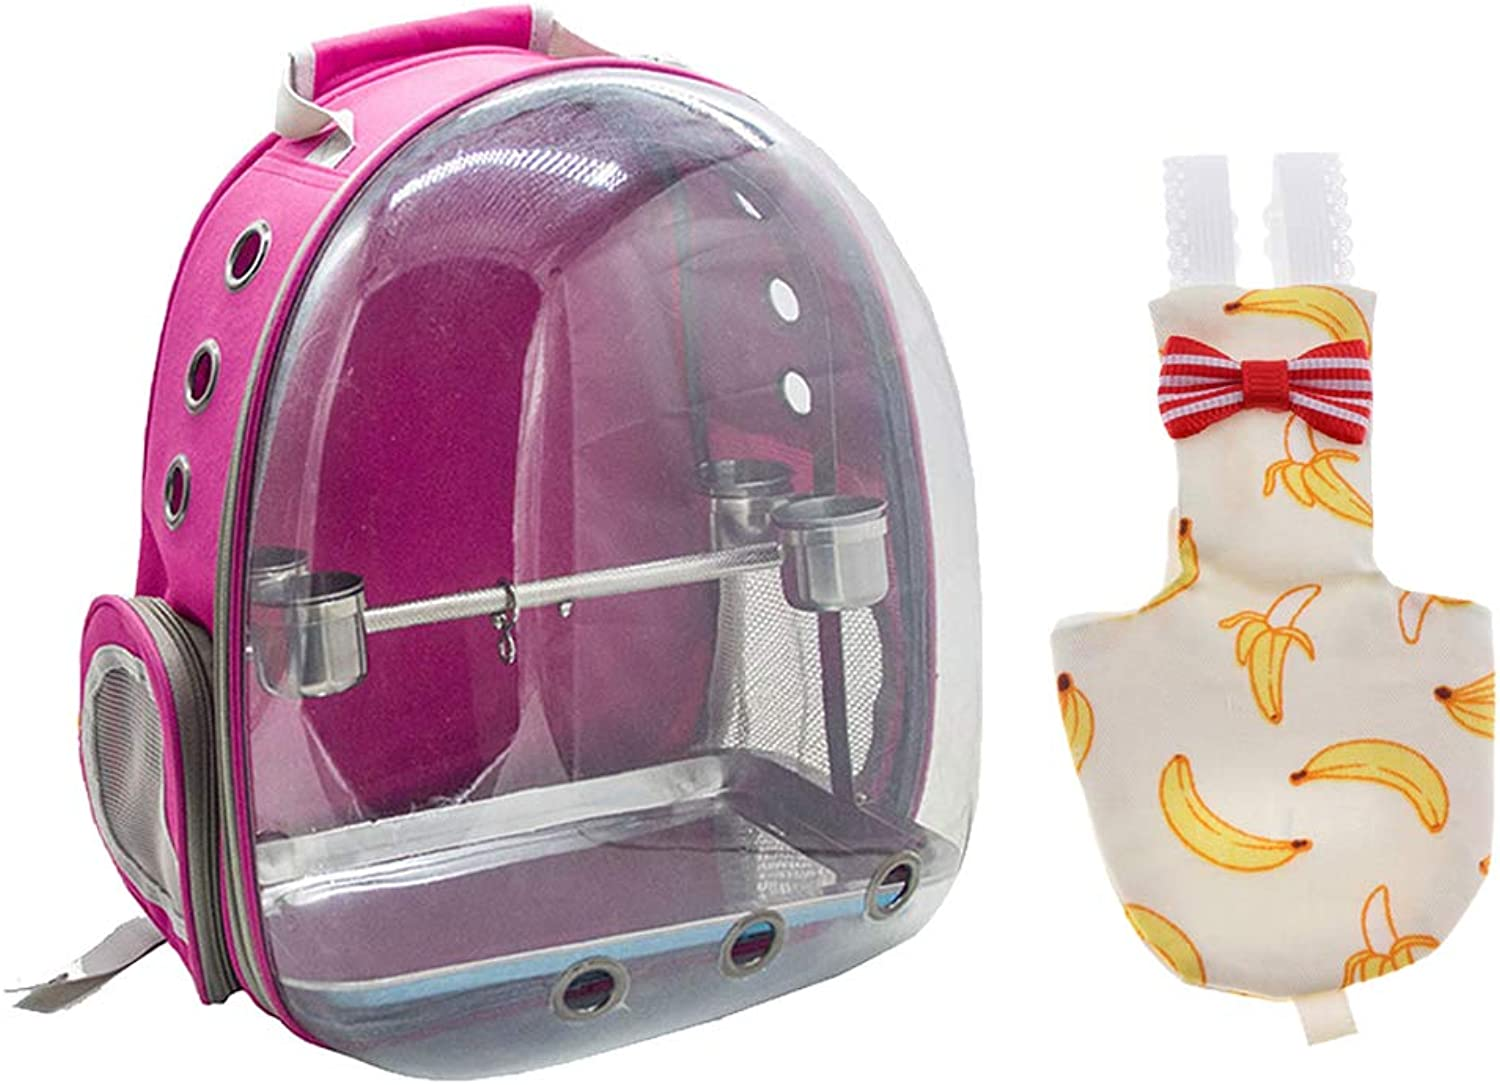 B Baosity Pet Bird Parred Travel Cage Carrier with 1 Set Perch pink Red Soft Parred Bird Nappy